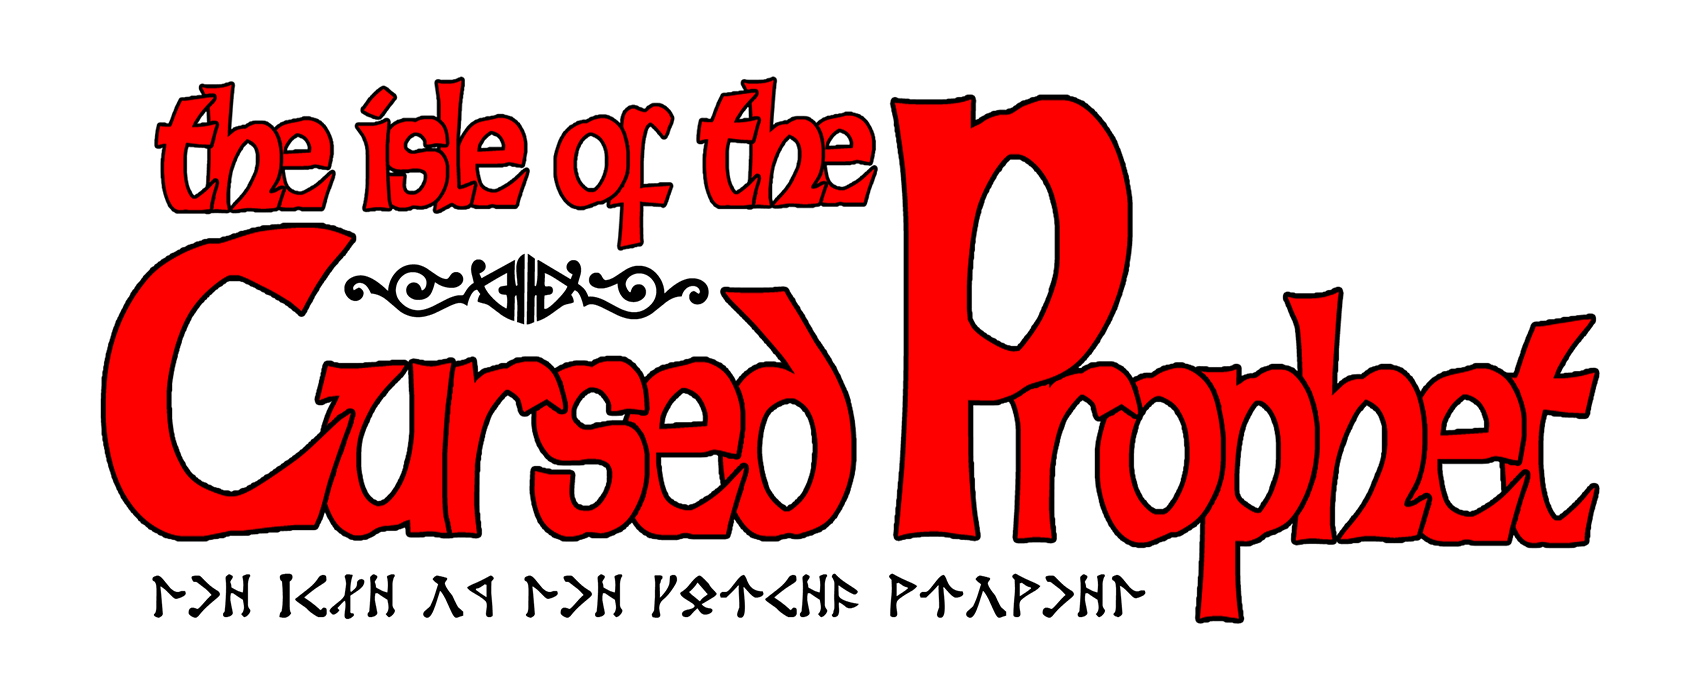 The Isle of the Cursed Prophet (C64)